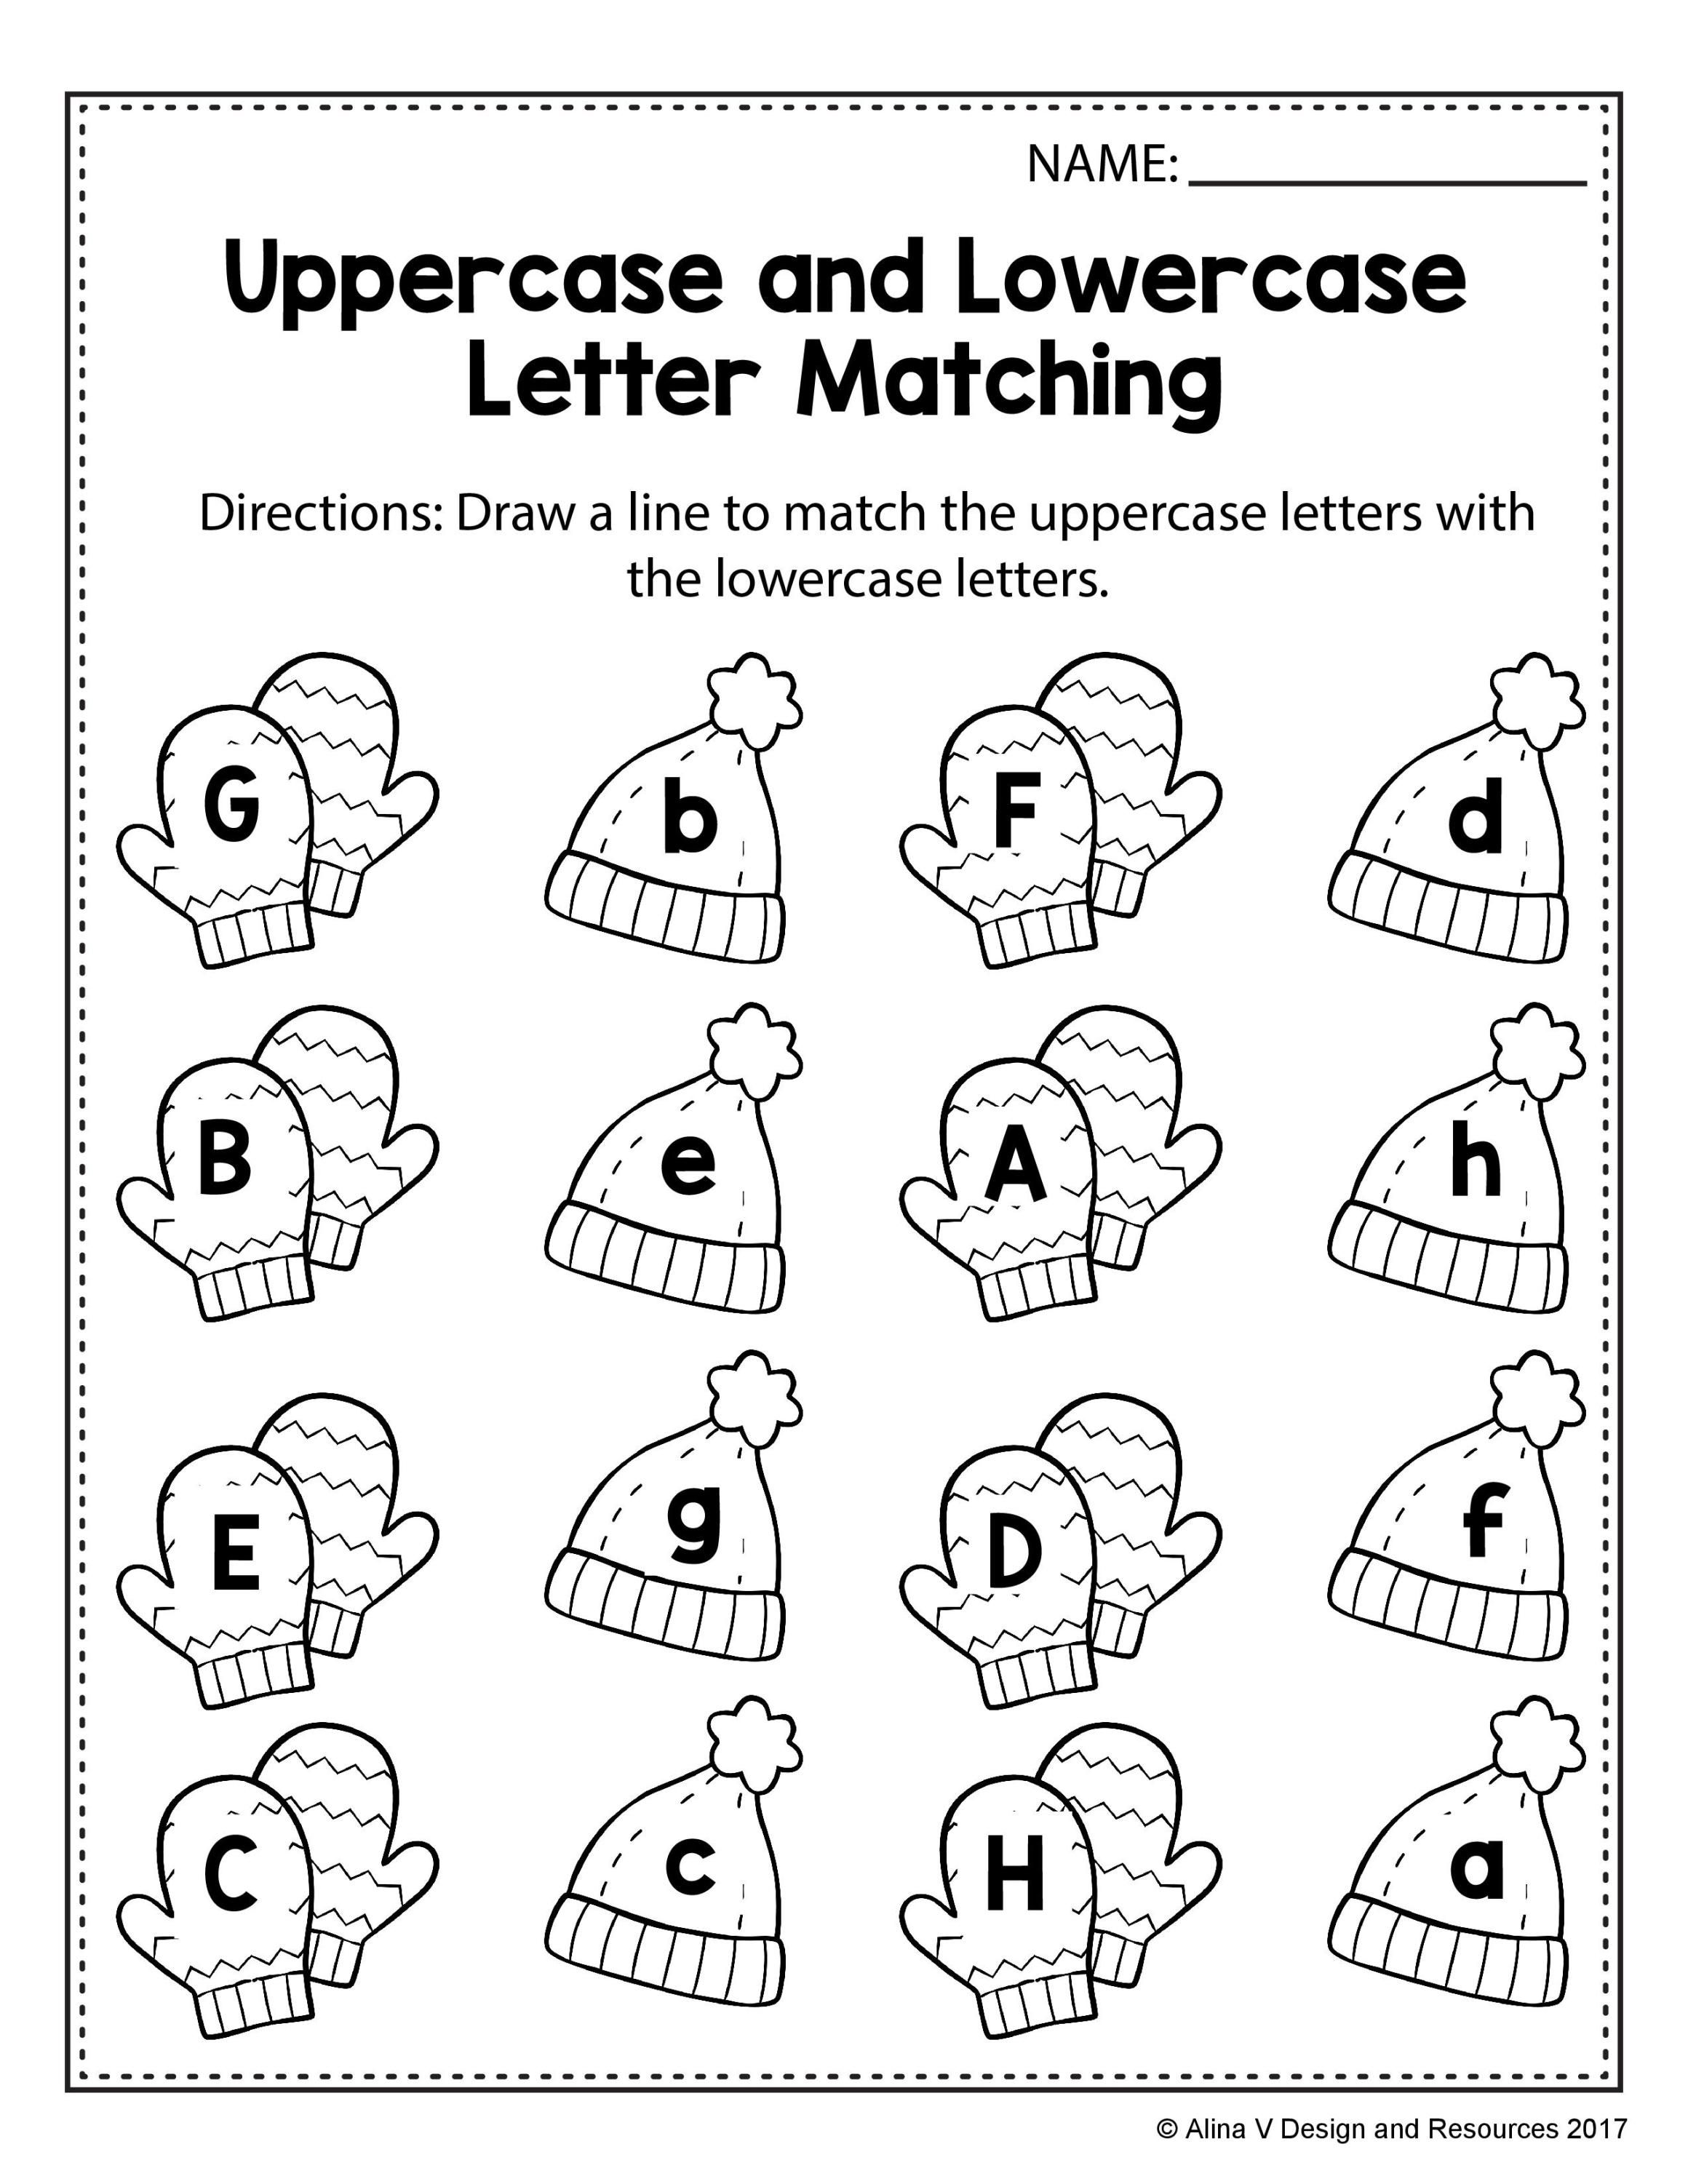 Free Winter Literacy Worksheet For Kindergarten No Prep Ideas For Teaching